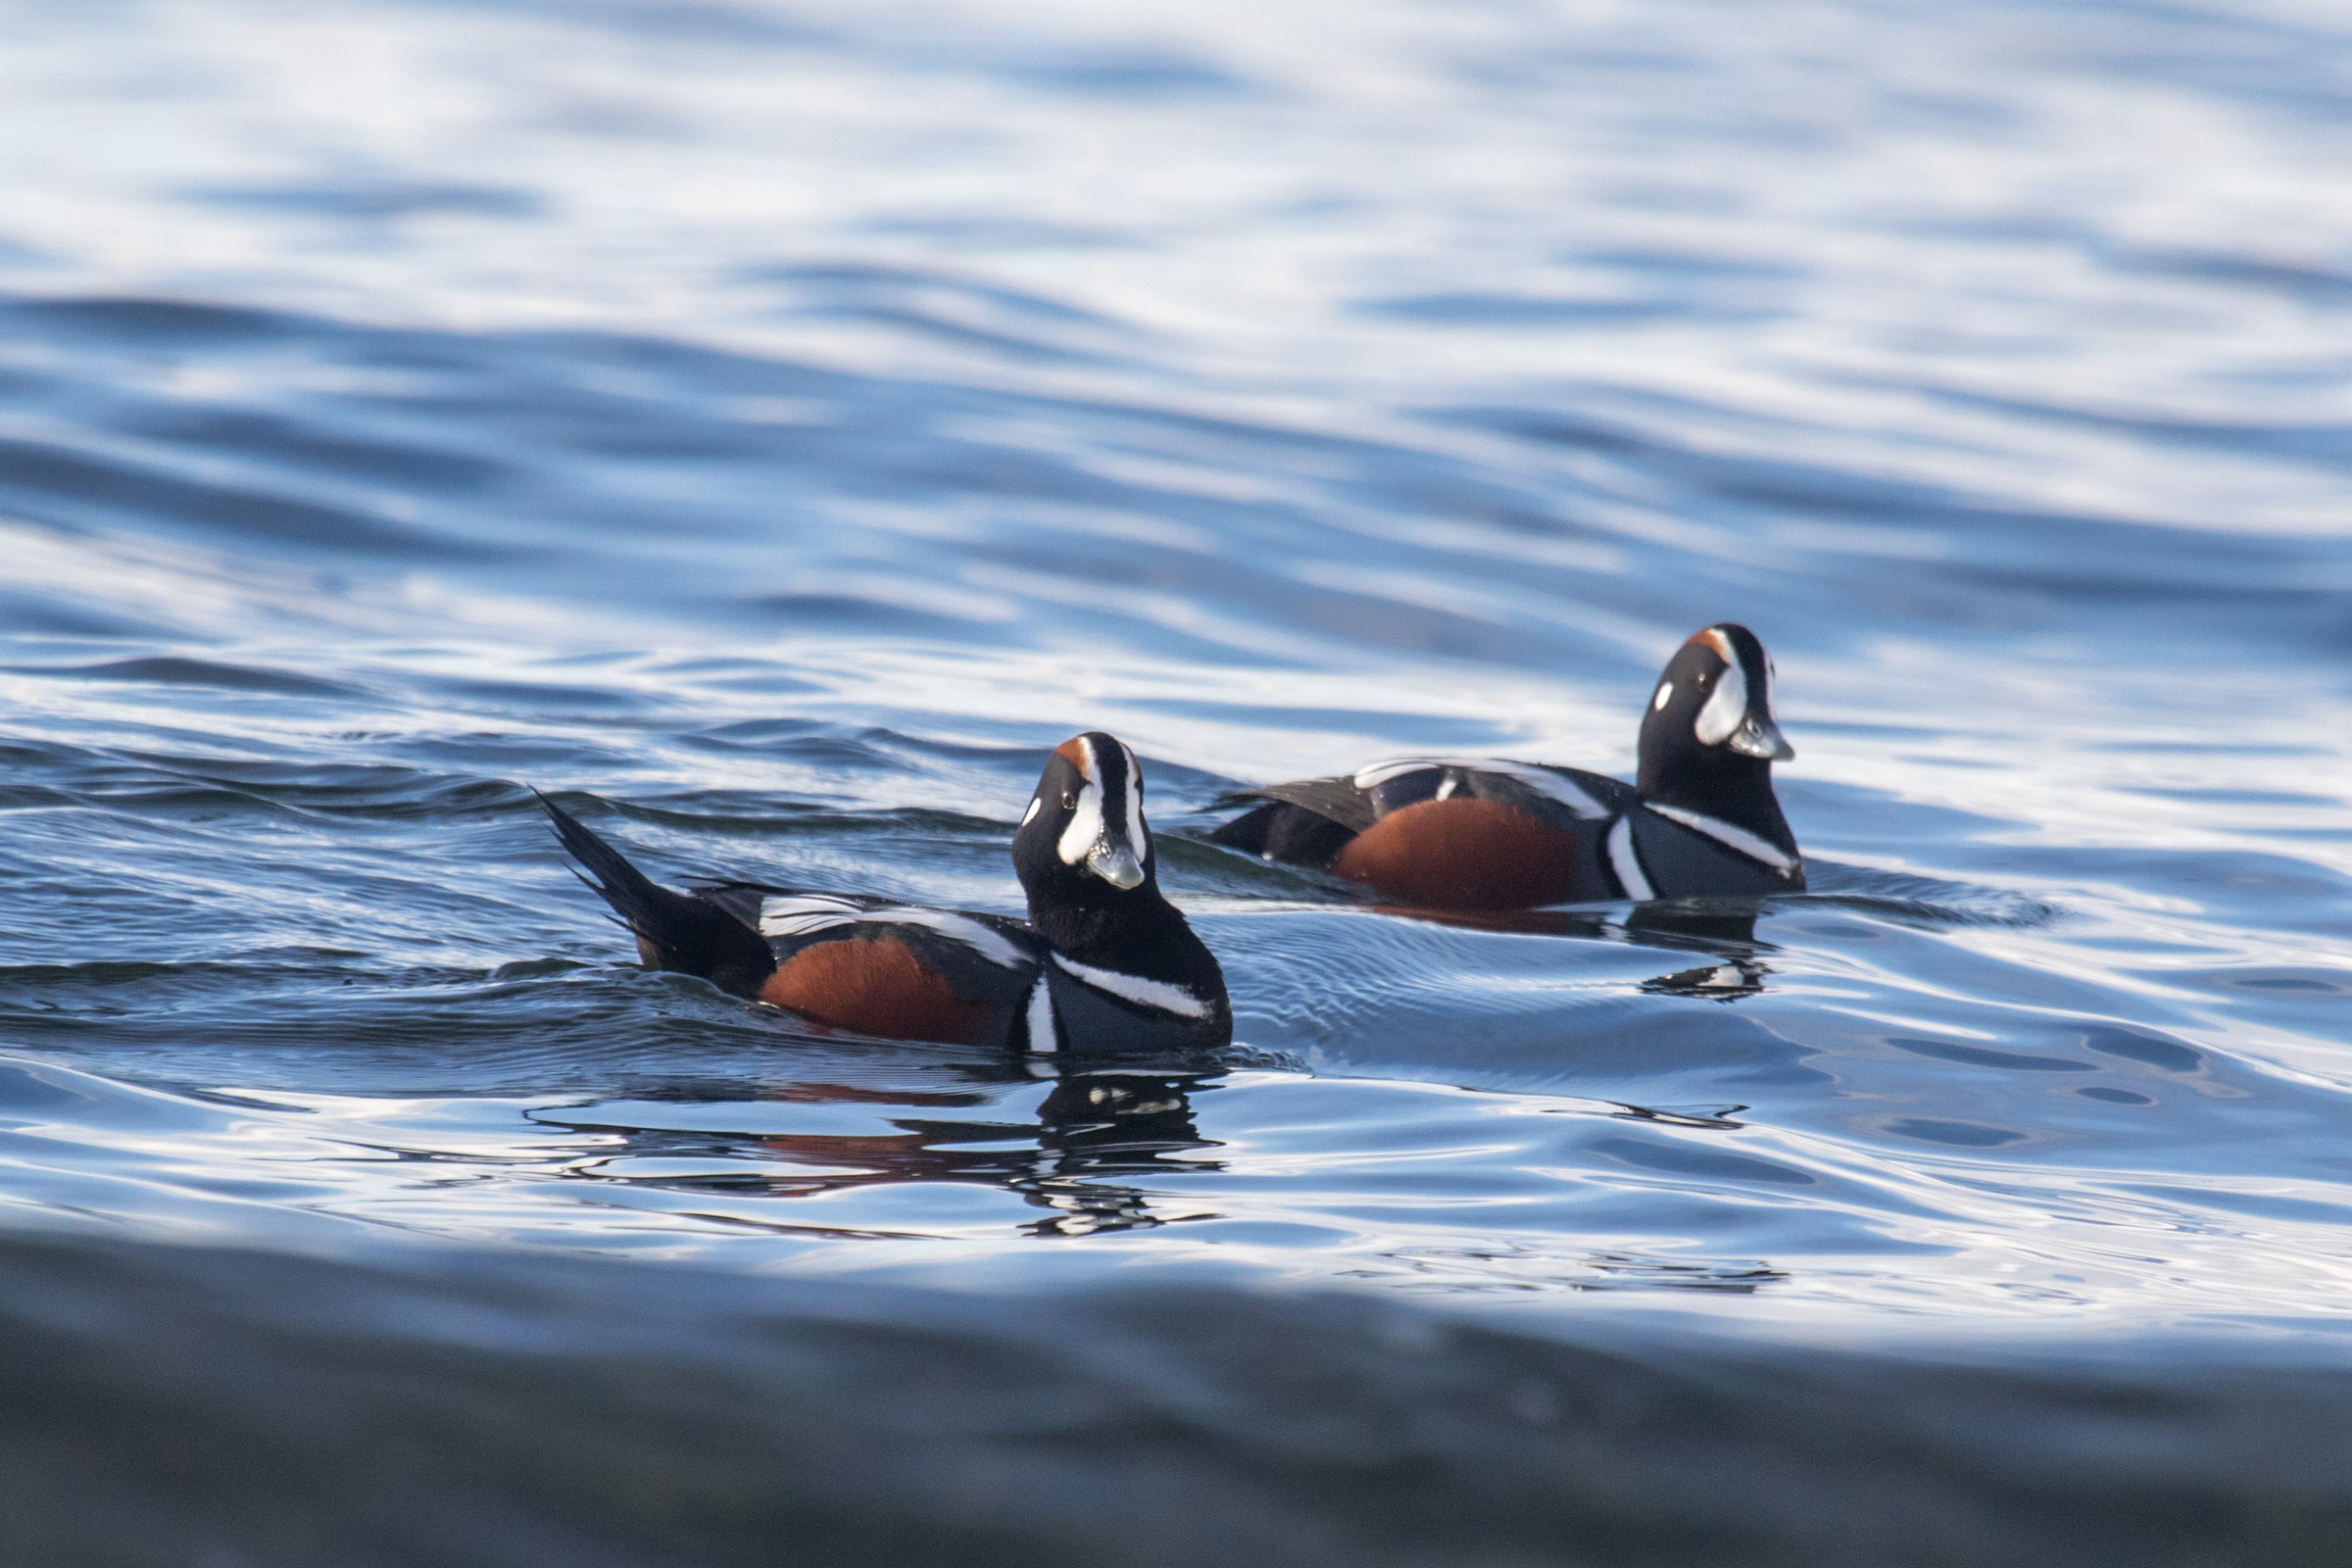 """On the Instagram caption of these Harlequin ducks, Alice shared: """"They are tough little birds, often found surfing in the roughest waters. In fact, these ducks actually suffer more broken bones than any other species."""" Alice Sun"""